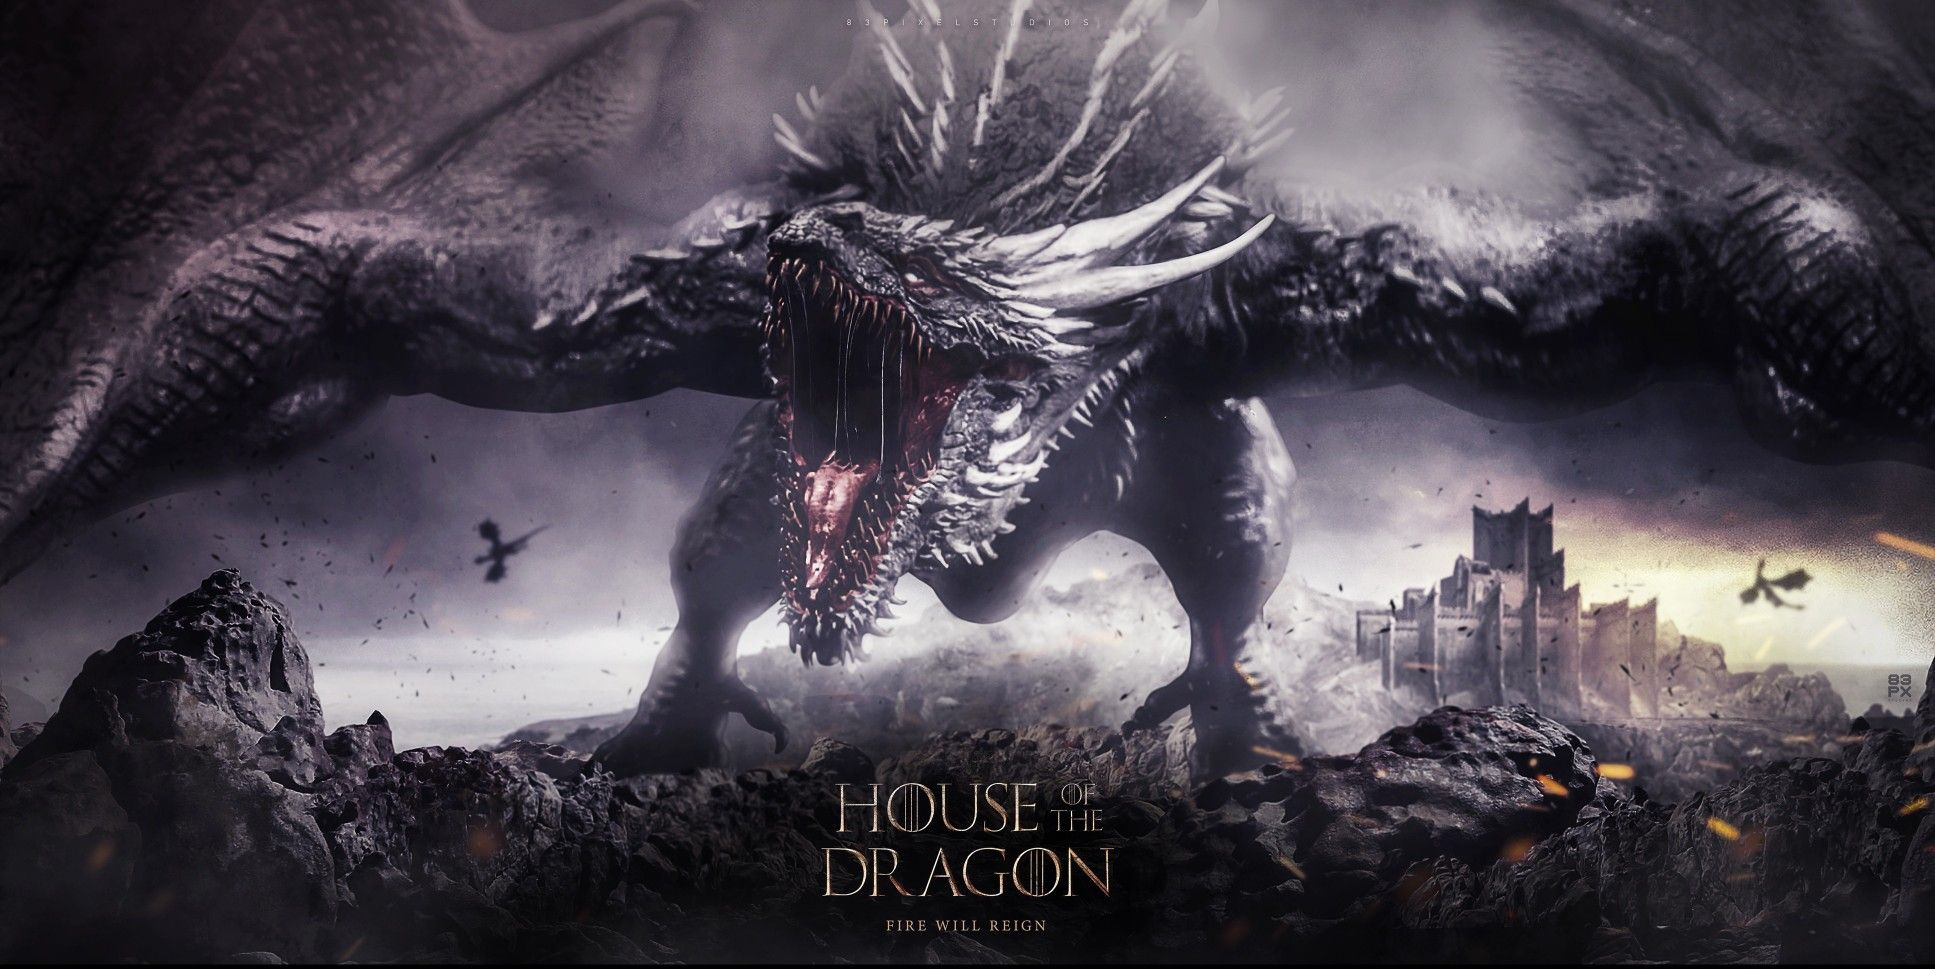 Game of throne spin-off - House of the Dragon : Balerion